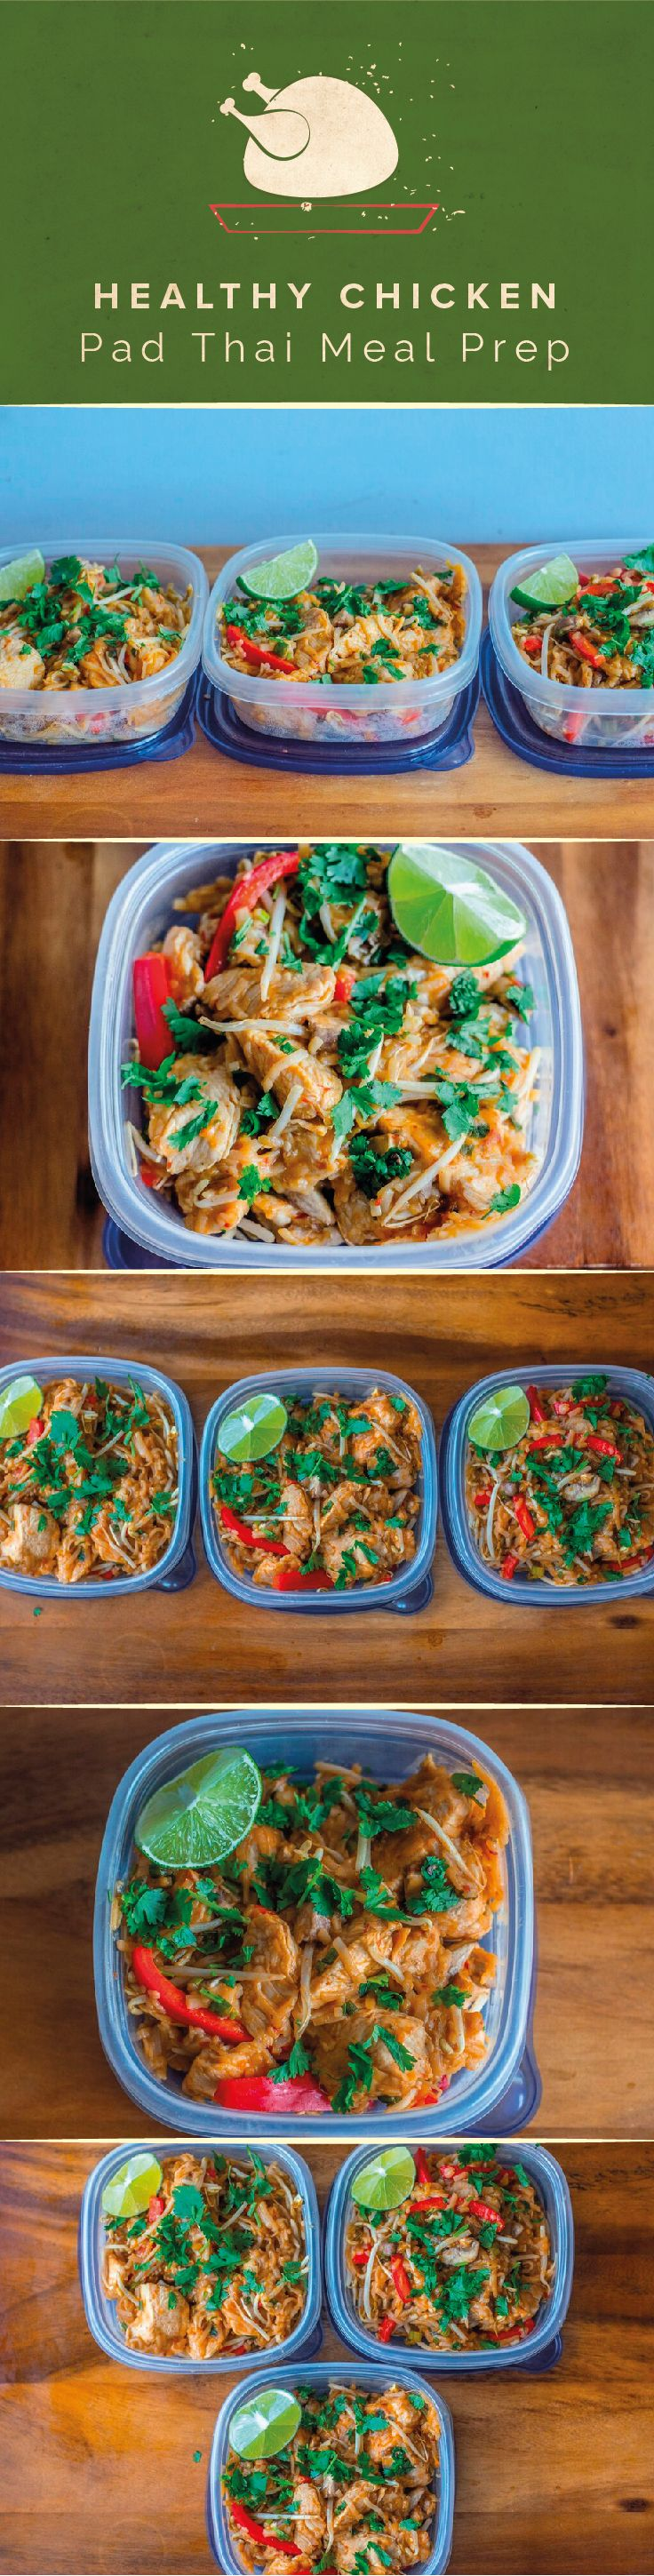 Recreating healthier versions of your favorite meals is a great way to add variety to your diet. Asian cuisines are among the most savory and exciting so it's fairly easy to draw inspiration from popular dishes. This chicken pad thai recipe is just what your meal prep needed. #fitmencook #fitwomencook #chicken #padthai #healthy